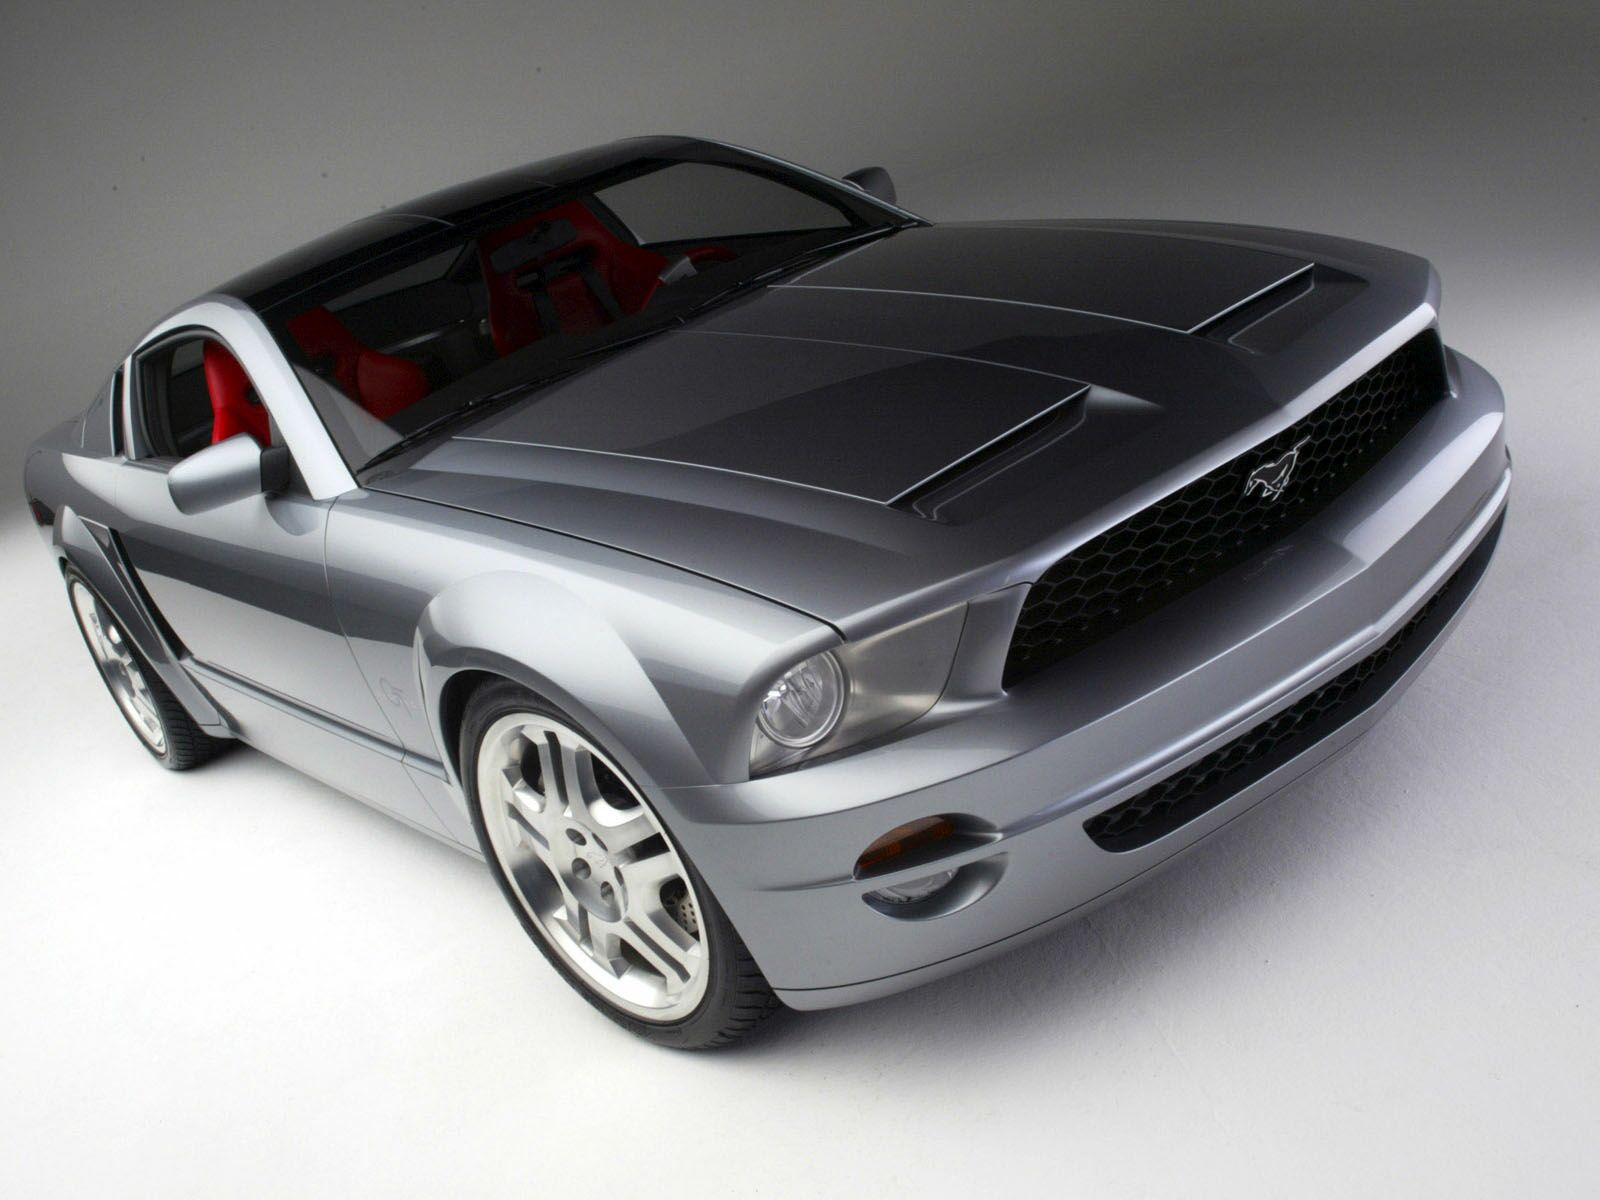 Photo of ford mustang gt 10625 image size 1600 x 1200 upload date